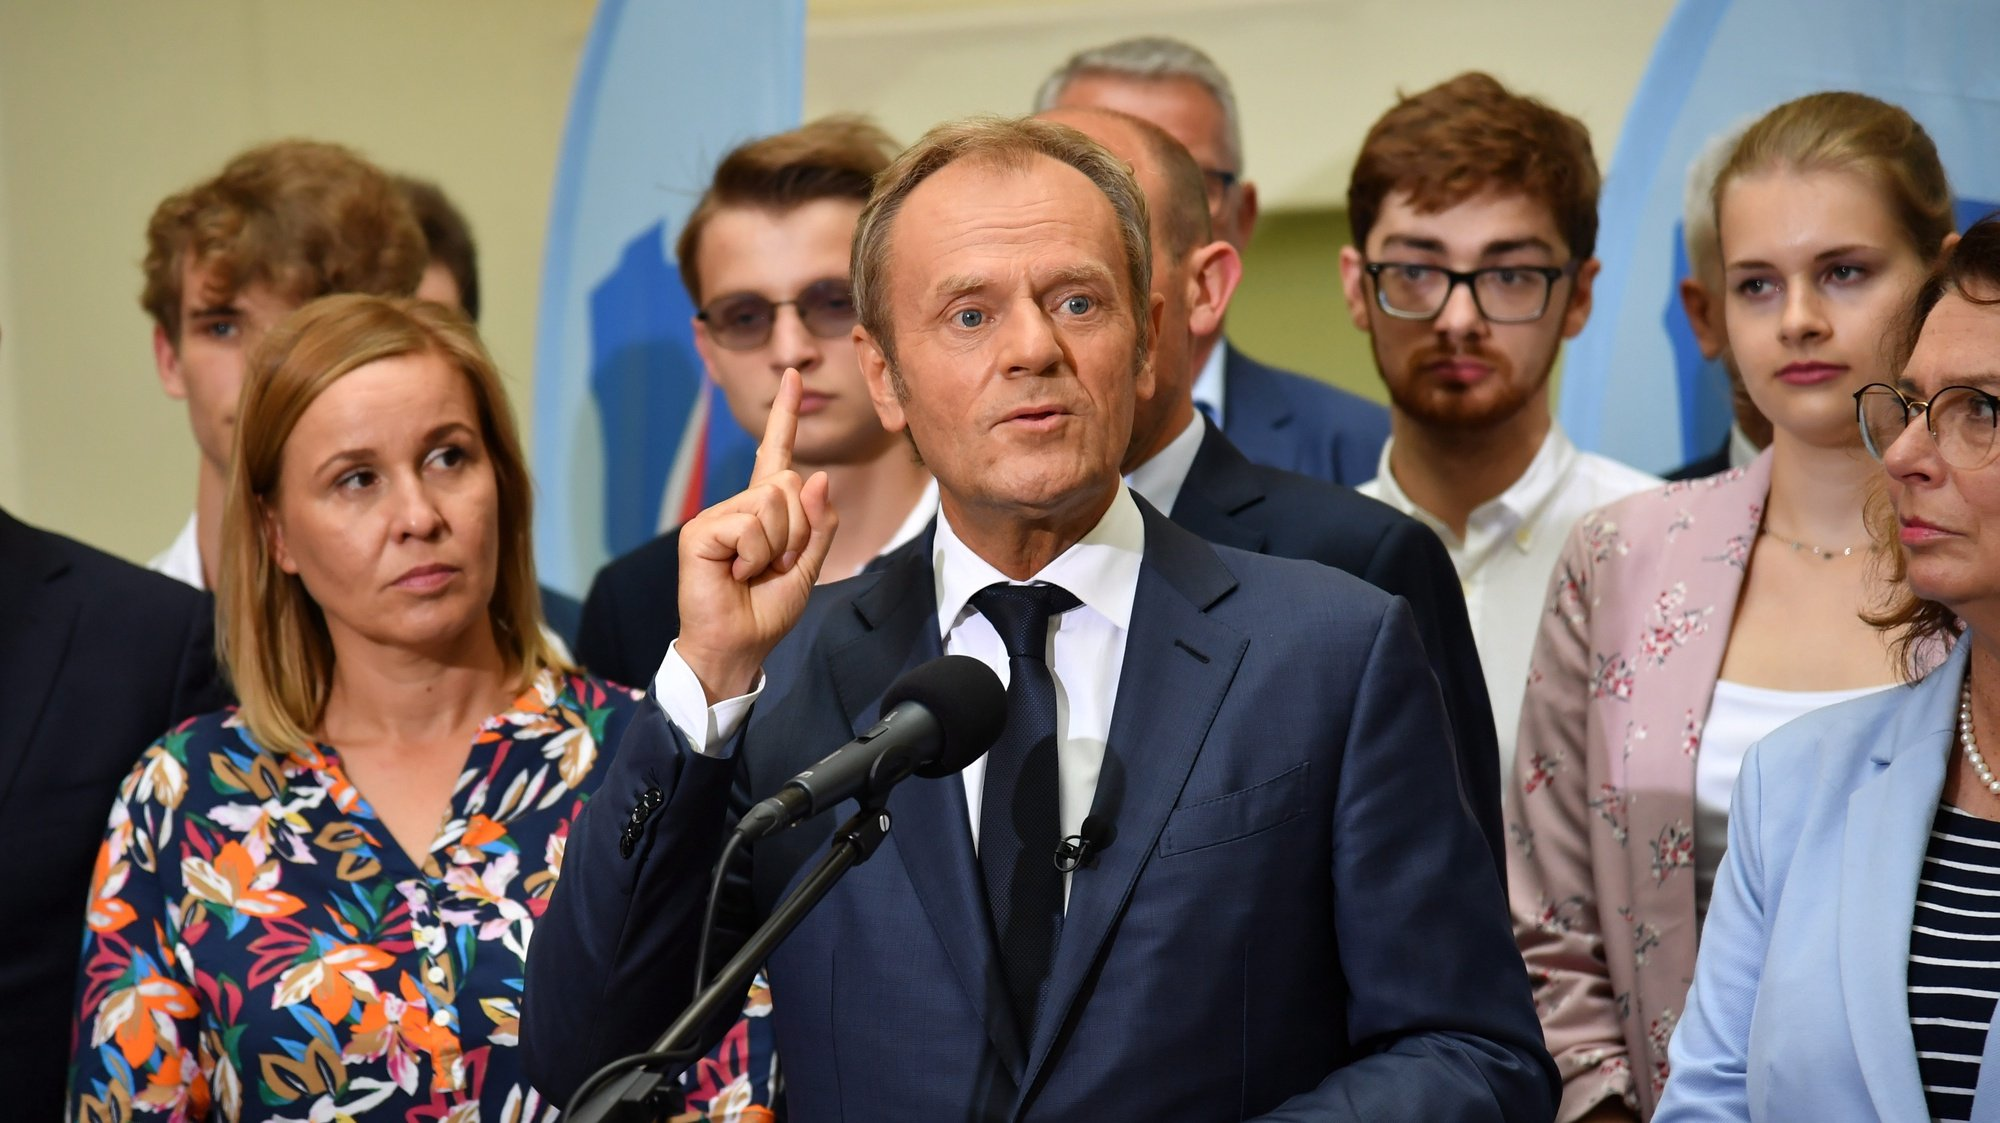 epa09324145 Leader of main opposition party Civic Platform Donald Tusk (C) and deputy Speaker of the Sejm Malgorzata Kidawa-Blonska (R), during a press conference on the White Eagle Square in Szczecin, Poland, 05 July 2021. Leaders of the Civic Platform are on a visit to the West Pomeranian Voivodeship.  EPA/MARCIN BIELECKI POLAND OUT